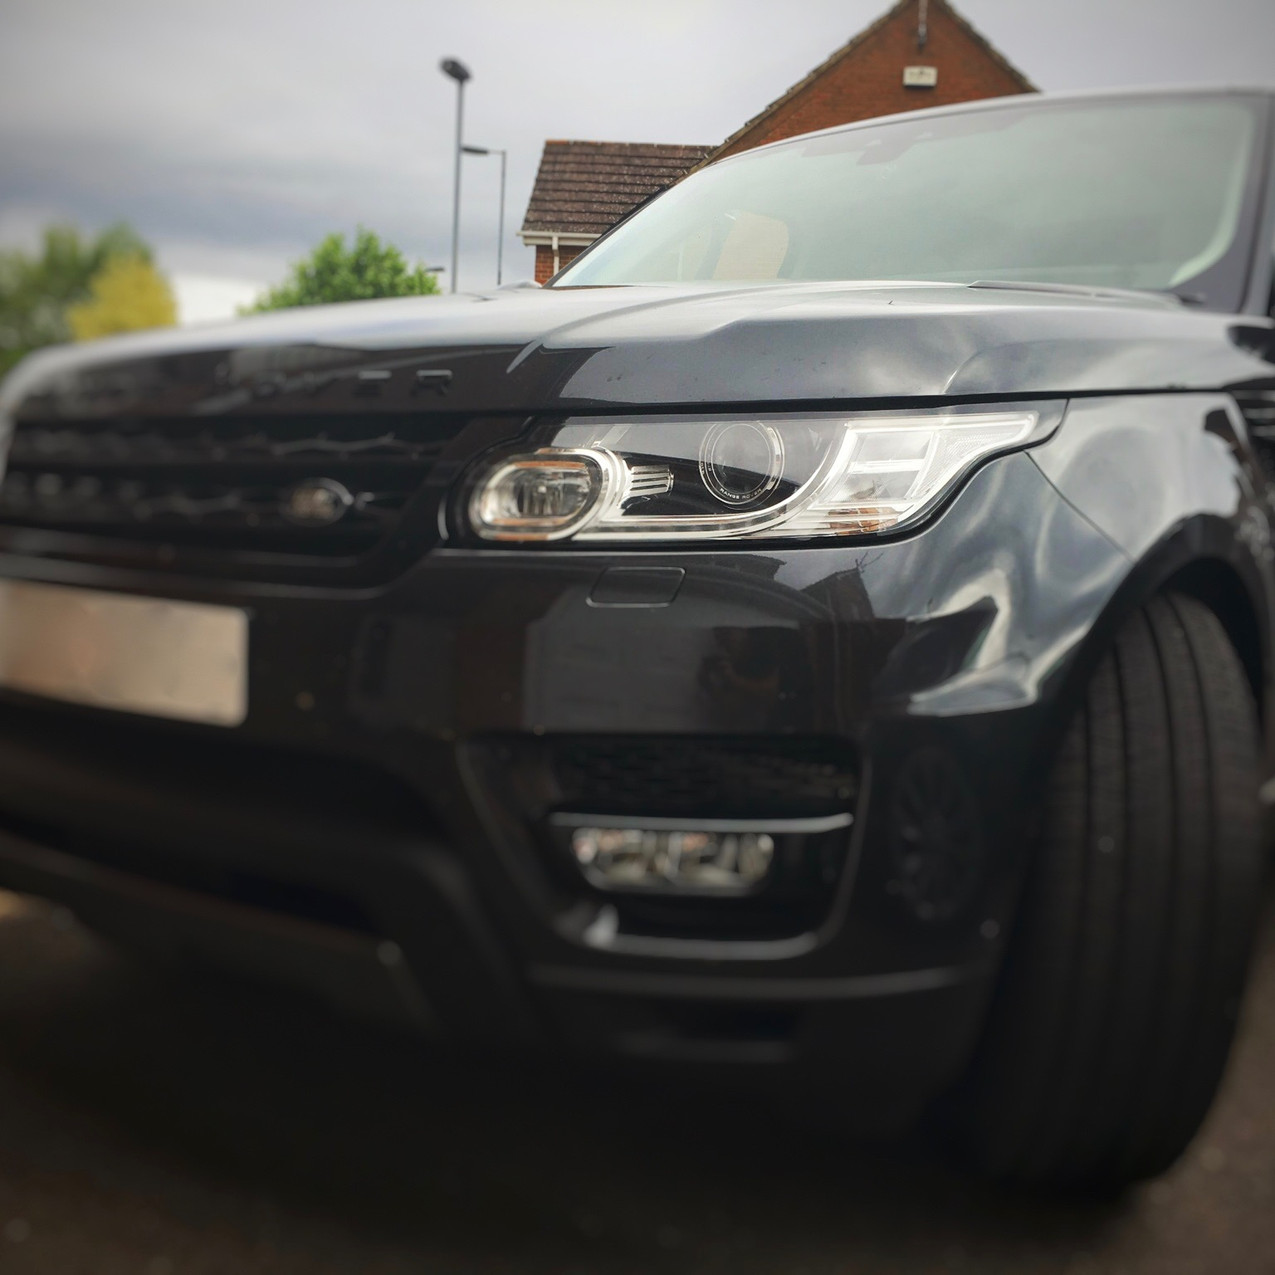 Goluk Professional T1 Dash Camera Installed in a Range Rover Monmouth Wales